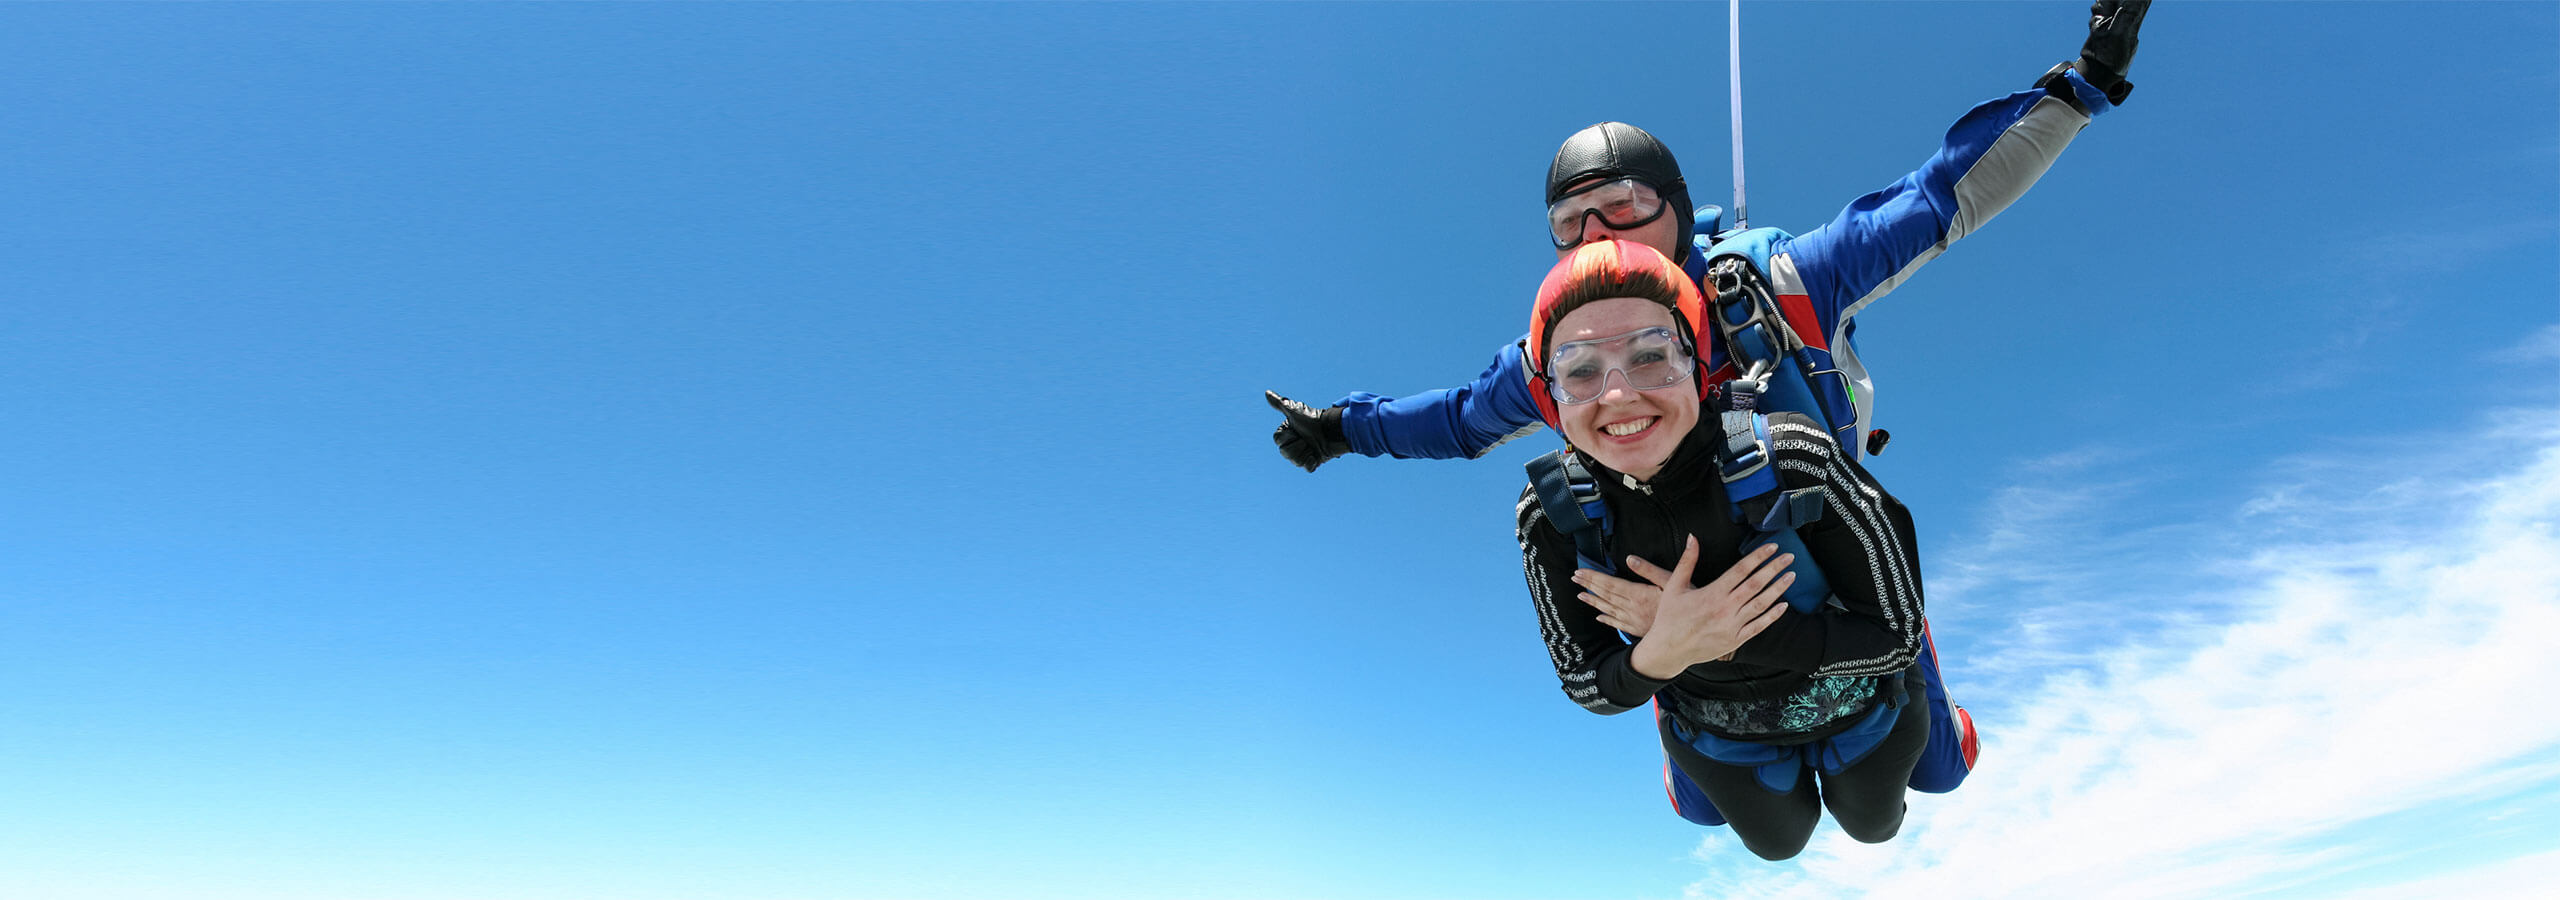 Financial-Freedom-Skydiving-Tandem